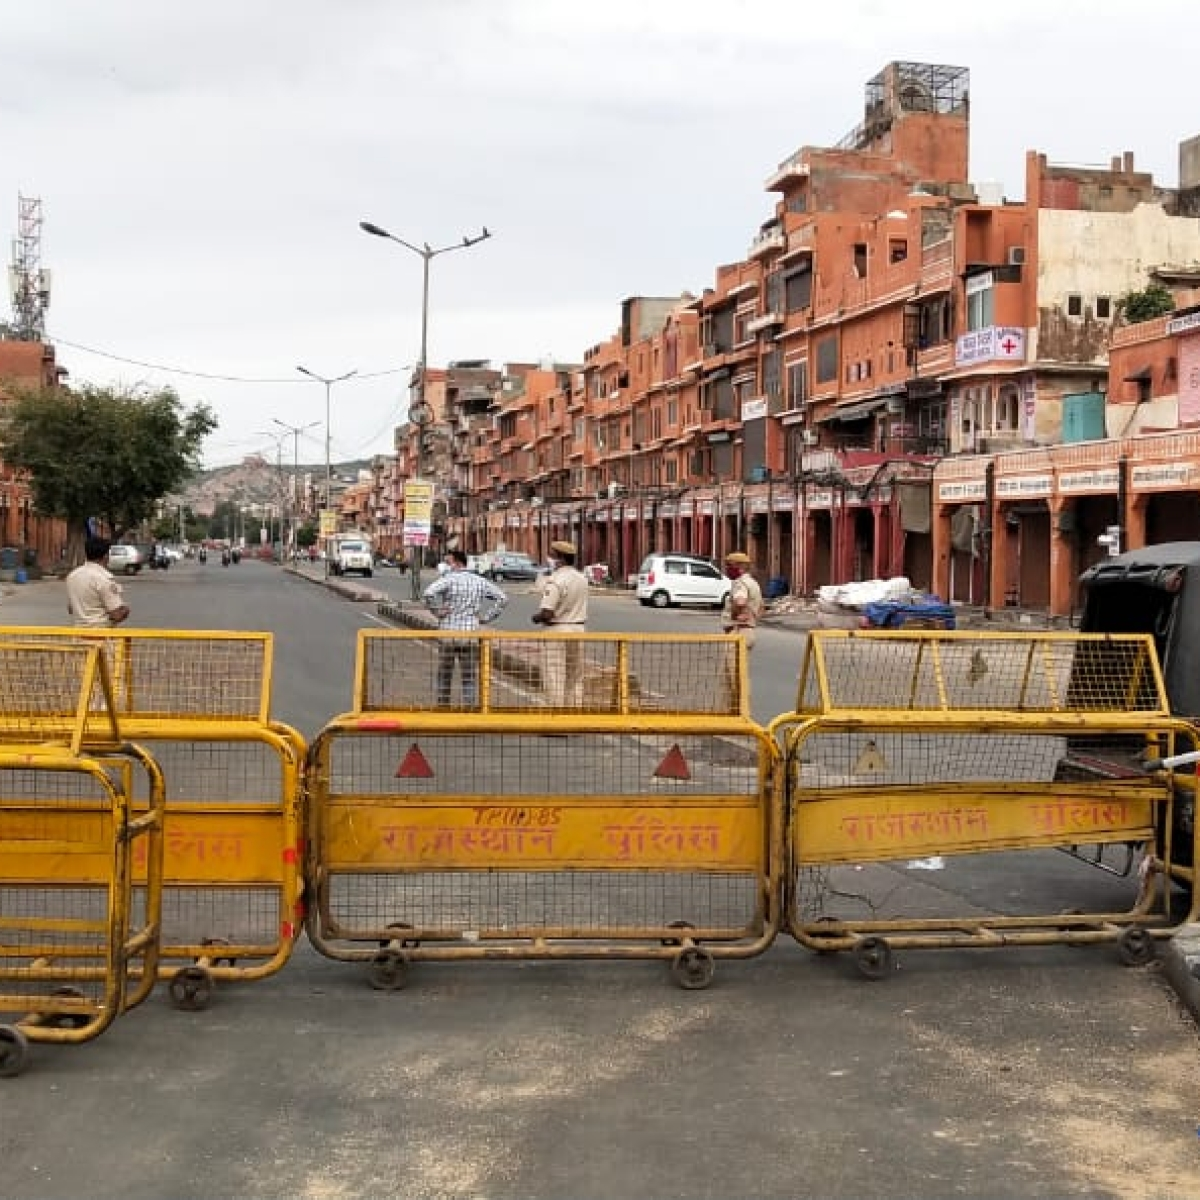 Coronavirus in Rajasthan: Bhilwara under curfew, shutdown from April 3